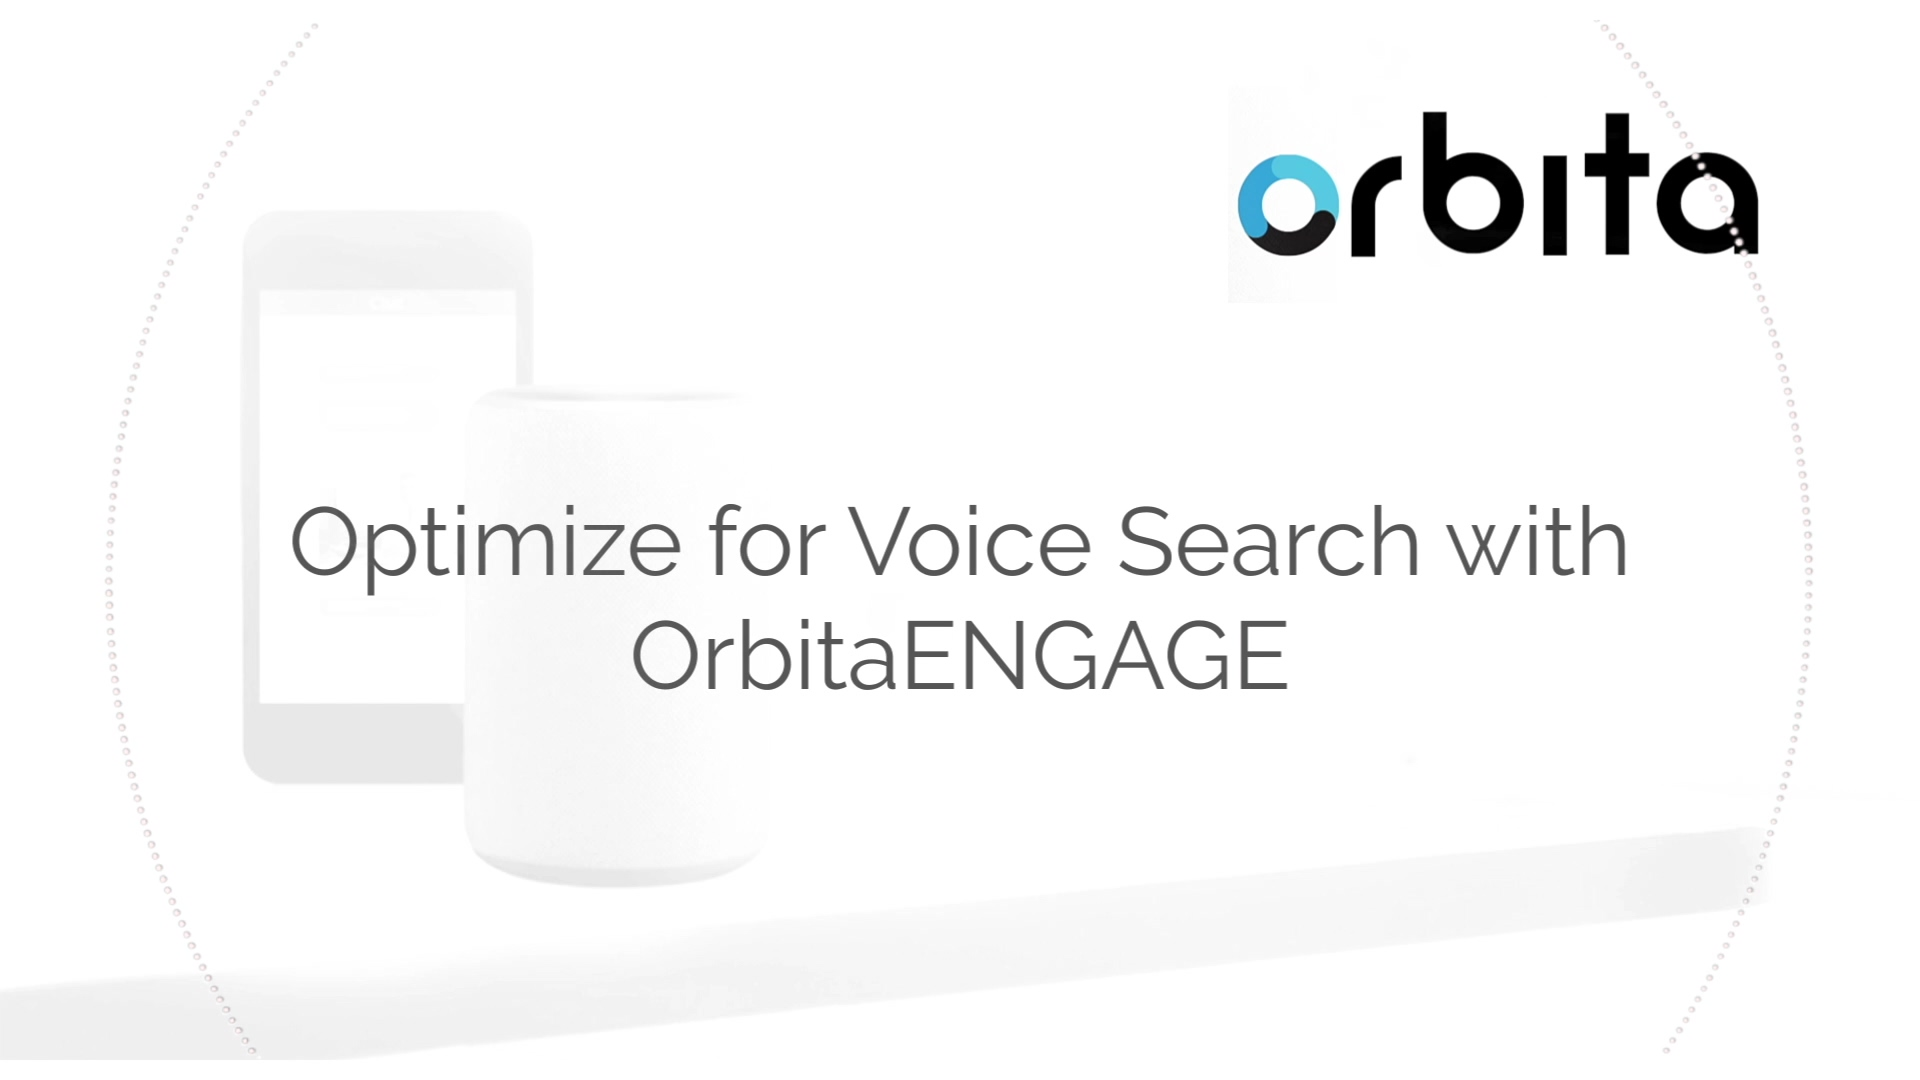 Optimize for Voice Search with OrbitaENGAGE